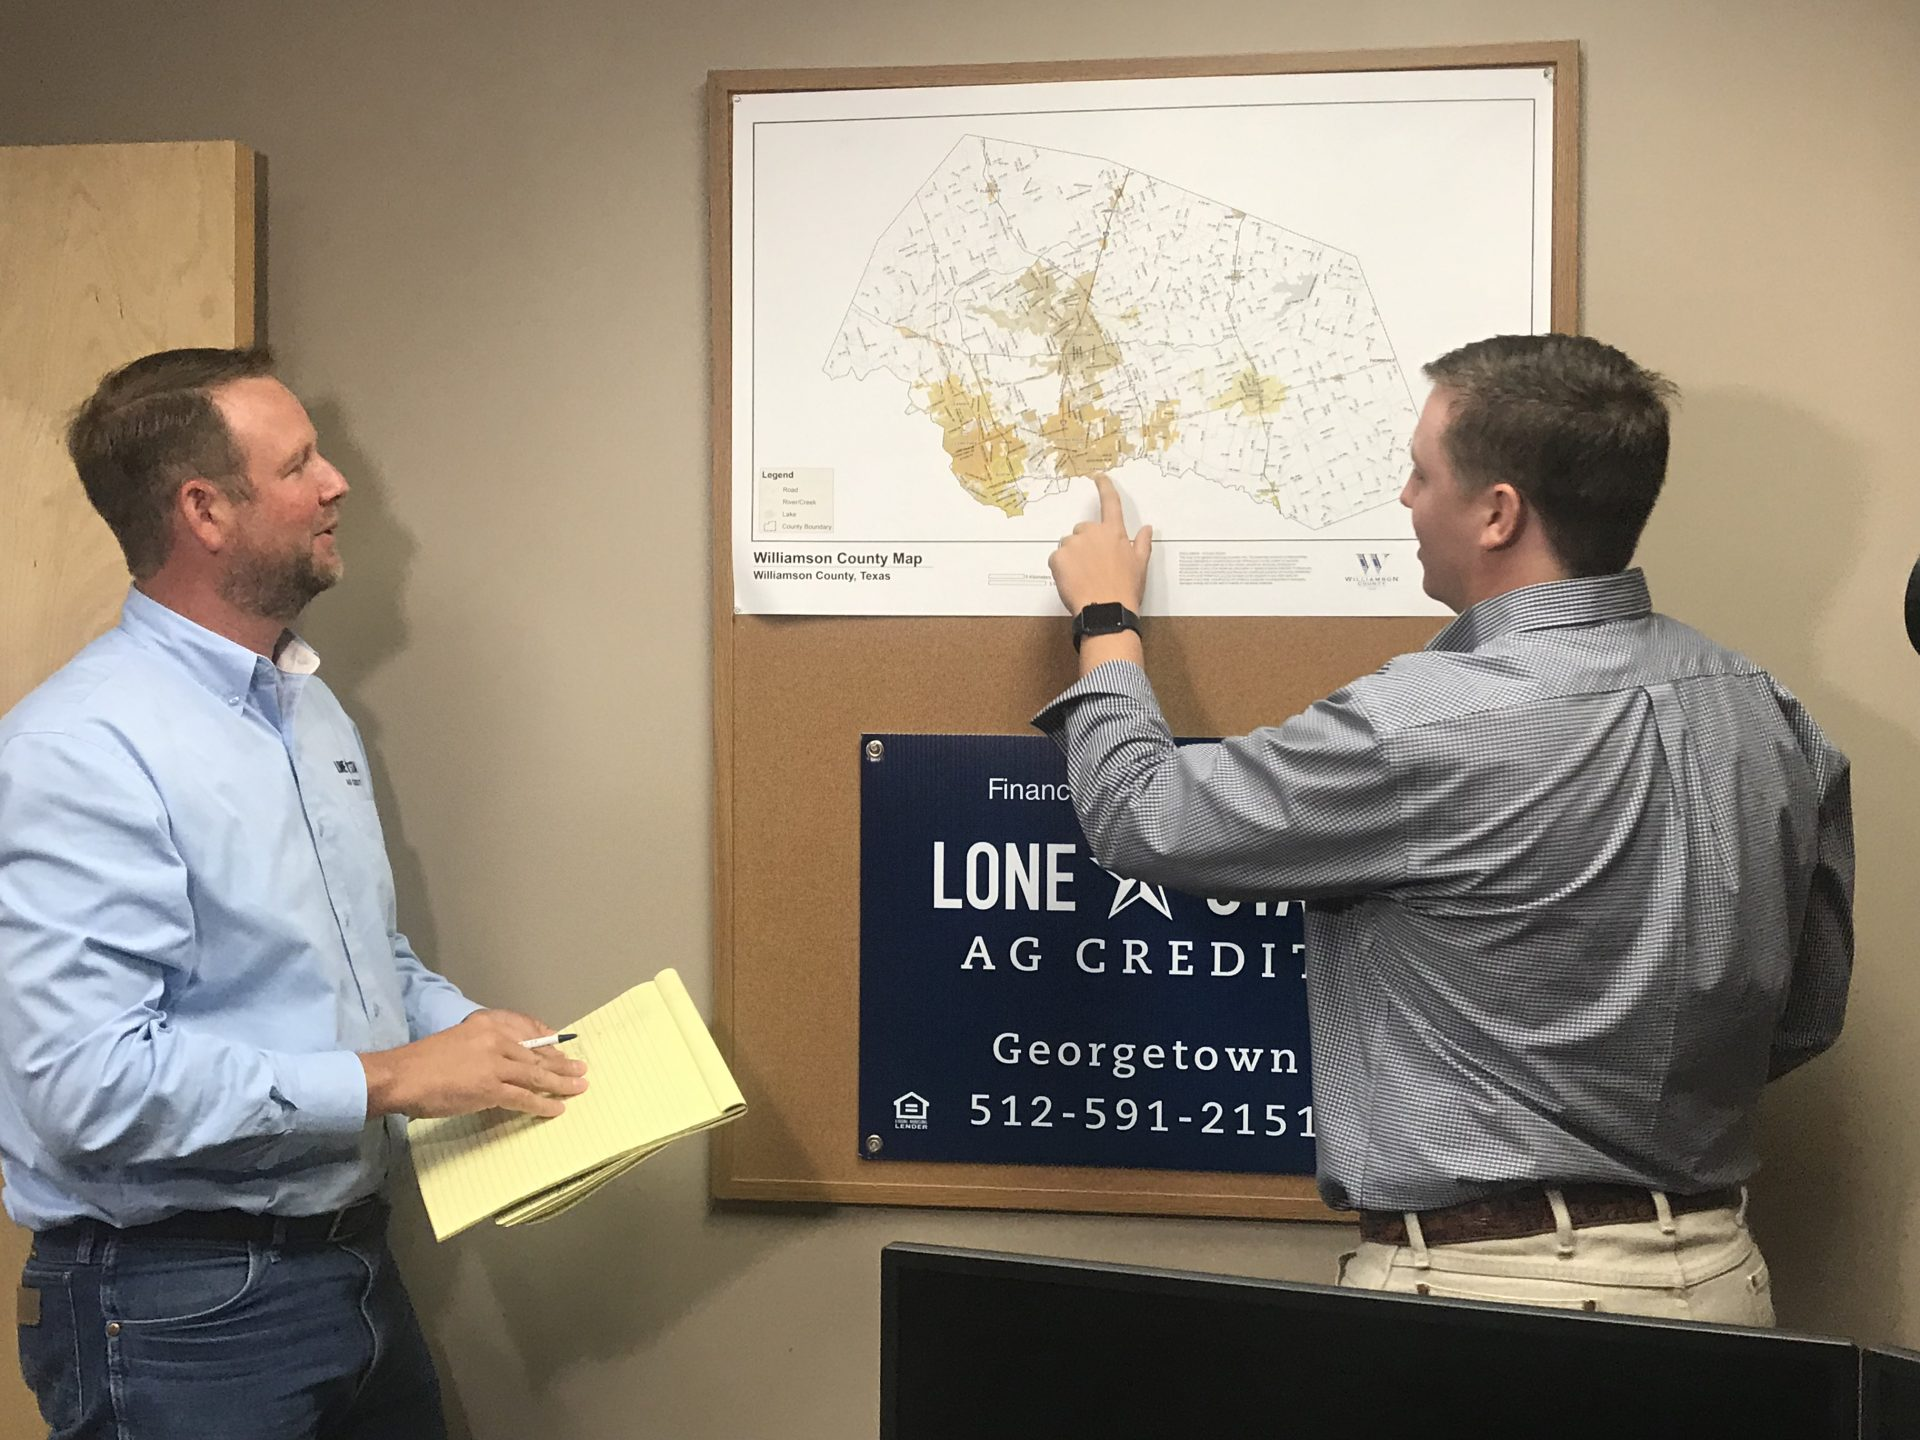 Lone Star Ag Credit loan officers, Nathan Winstead and Tyler Rosser looking at a map.